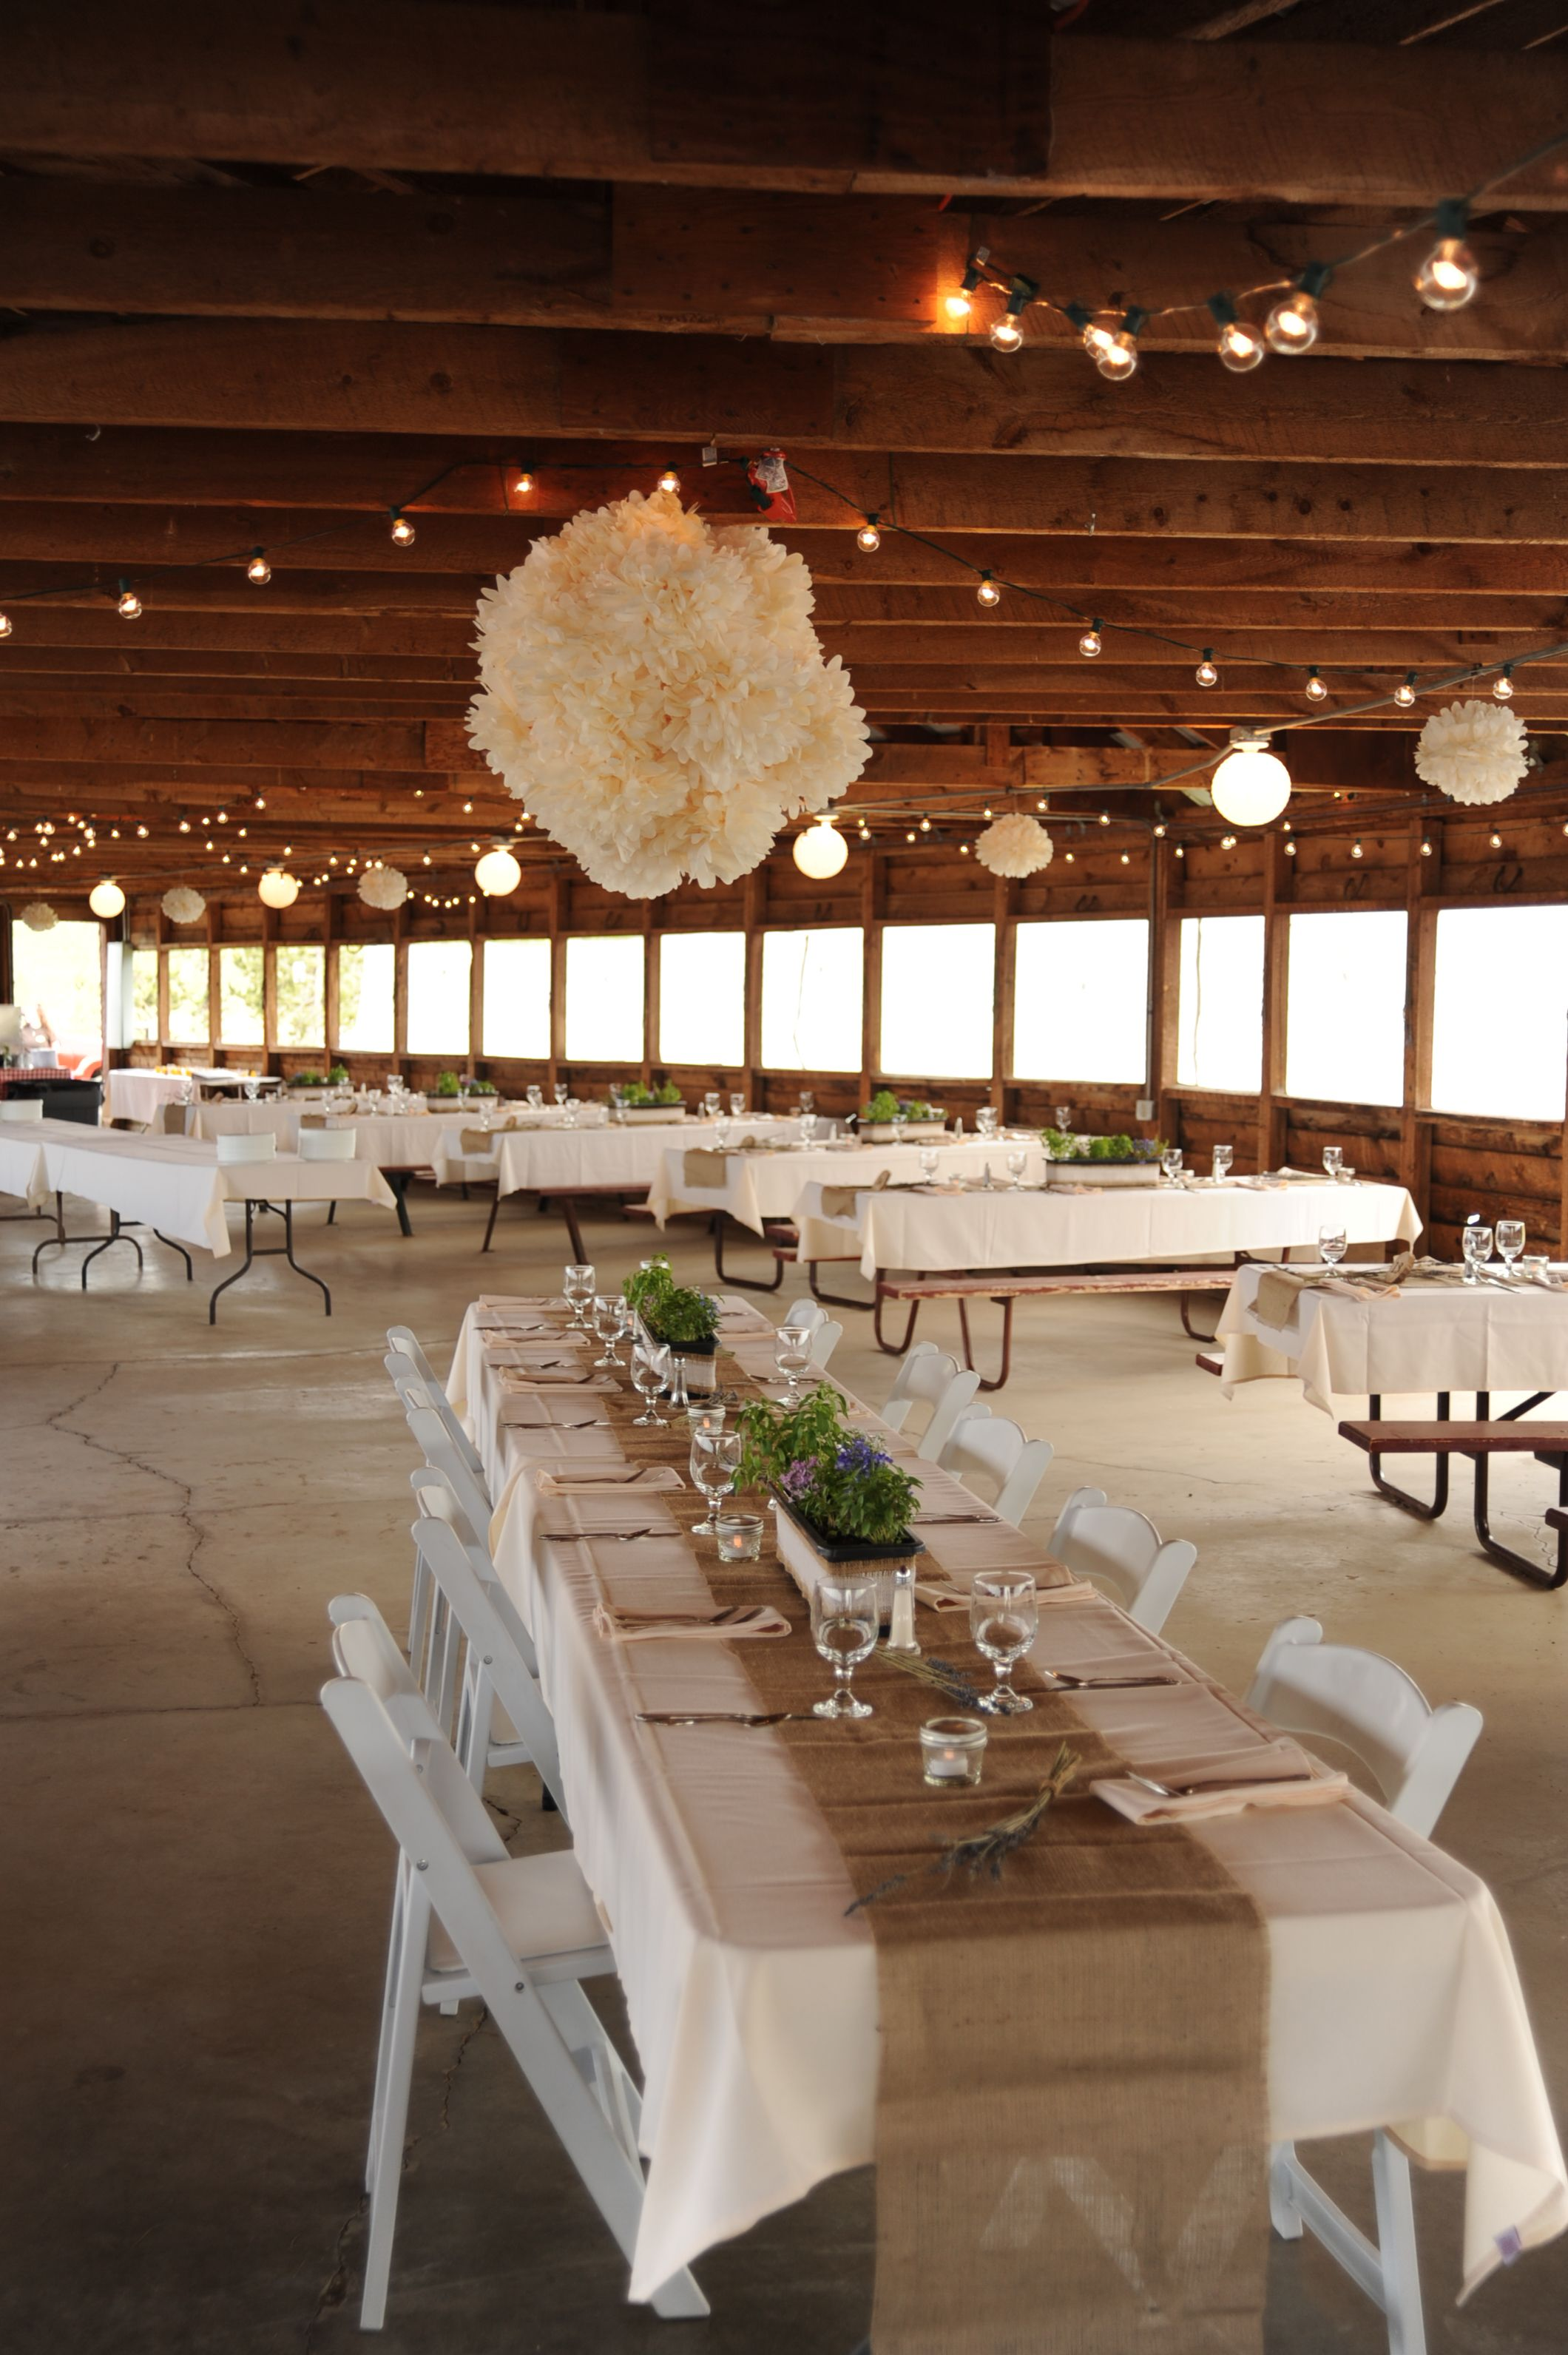 affordable wedding reception venues minnesota%0A Snow Mountain Ranch wedding Reception  Mountain Air cookout shelter   Outdoor pavillion reception  bulb